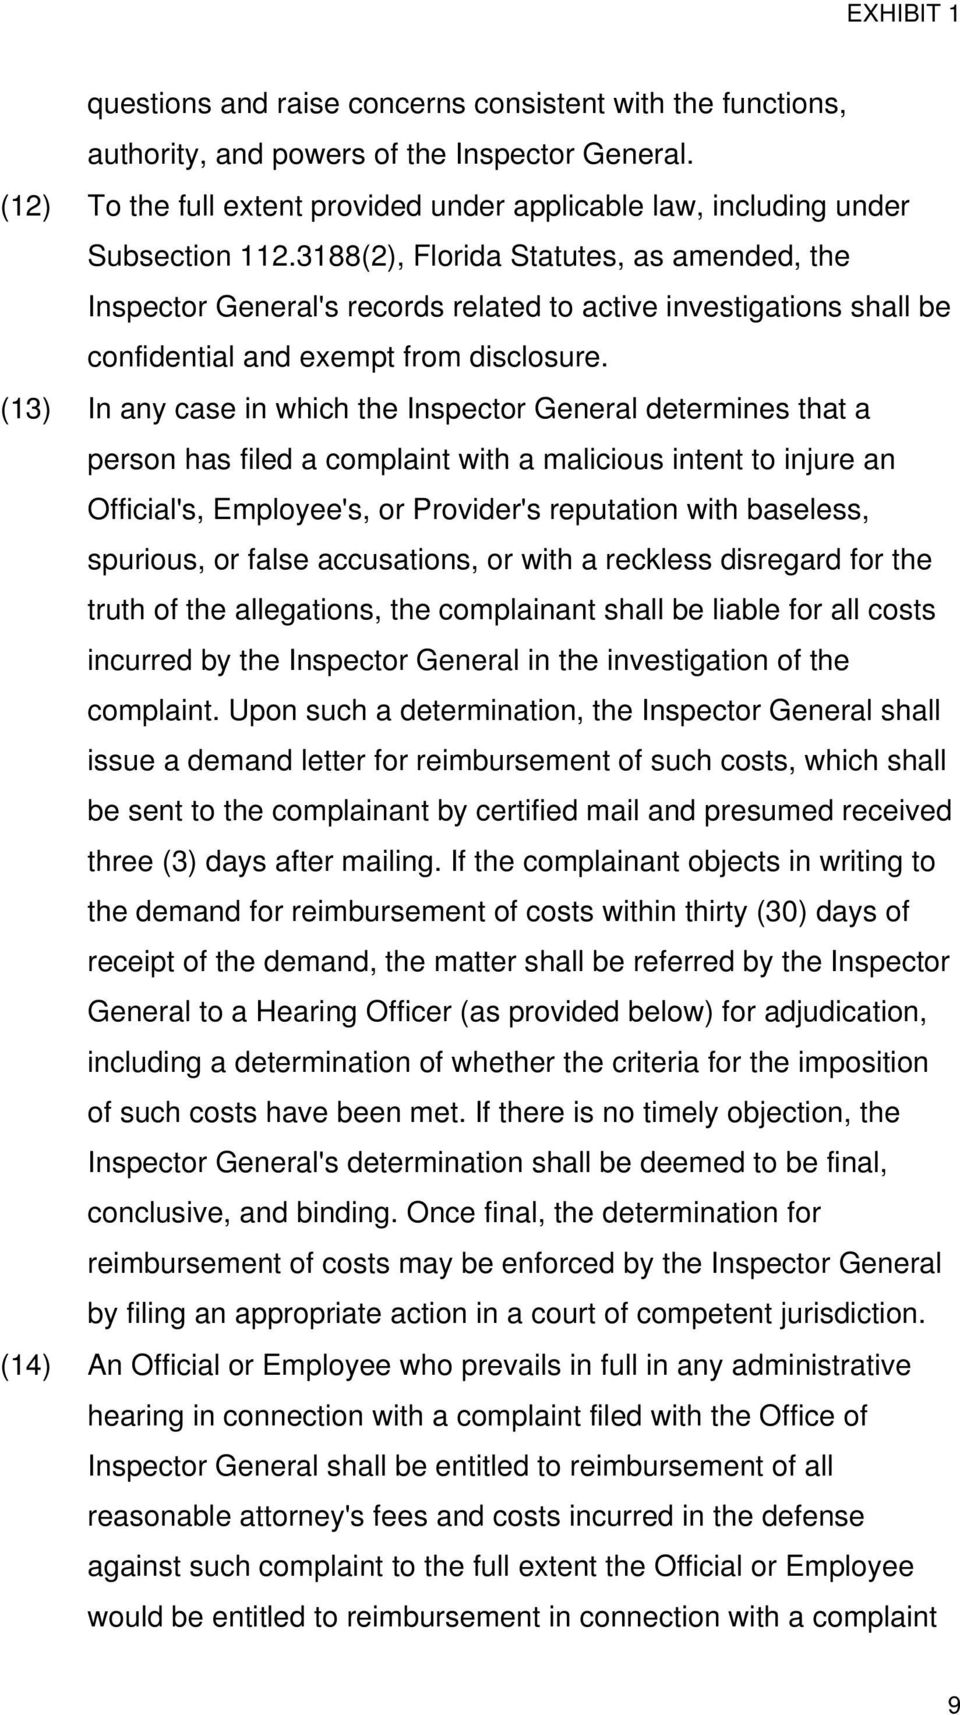 (13) In any case in which the Inspector General determines that a person has filed a complaint with a malicious intent to injure an Official's, Employee's, or Provider's reputation with baseless,